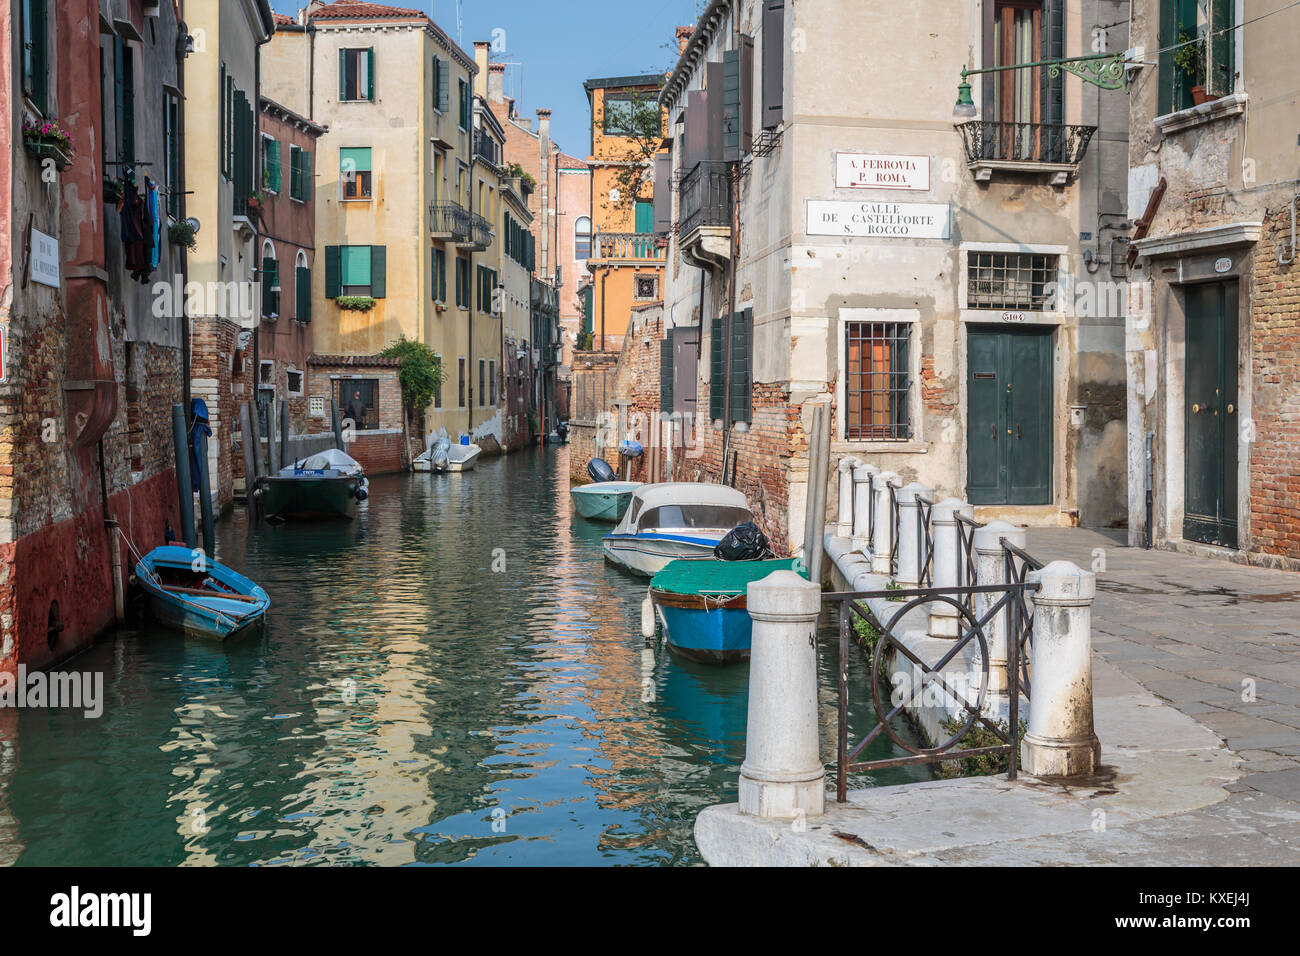 A small canal in Veneto, Venice, Italy, Europe, - Stock Image